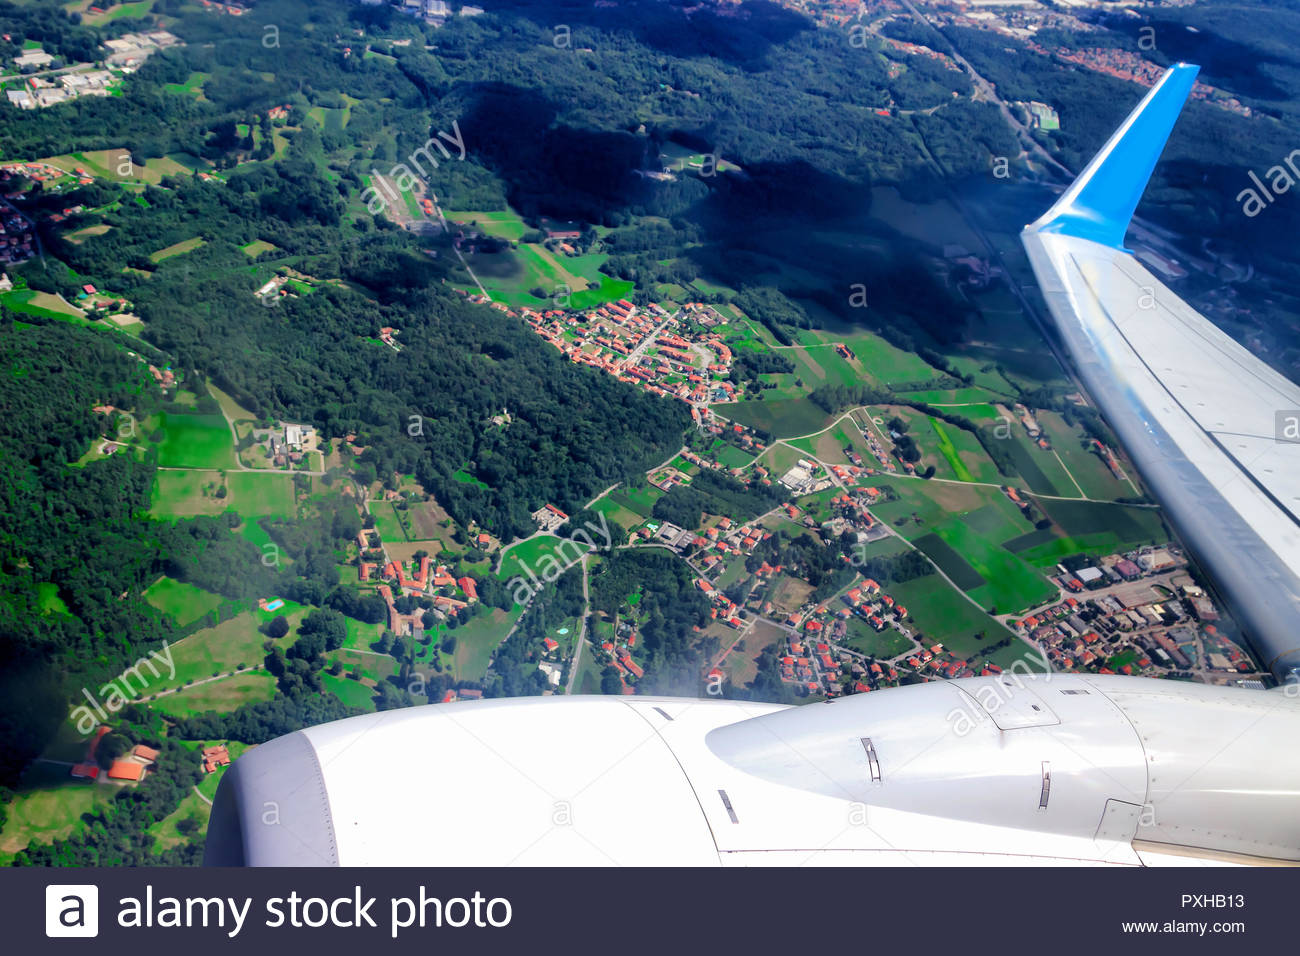 View from airplane window above human settlement. Plane wjite turbine and wing. - Stock Image